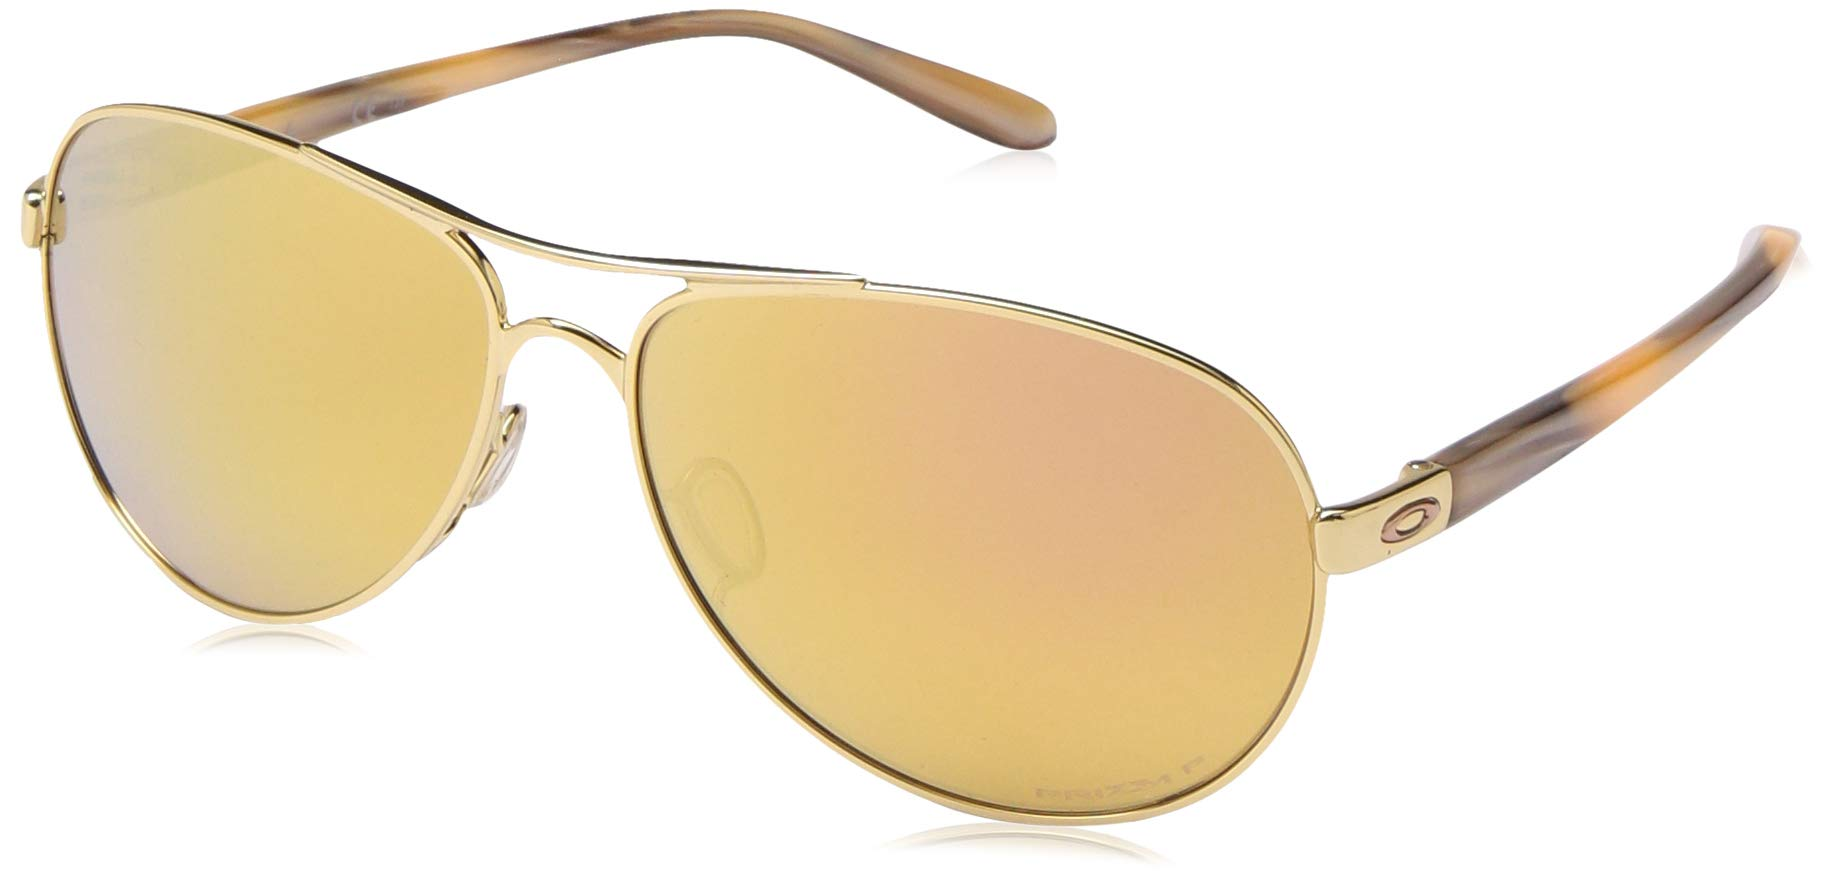 Oakley Women's OO4079 Feedback Aviator Metal Sunglasses, Polished Gold/Prizm Rose Gold Polarized, 59 mm